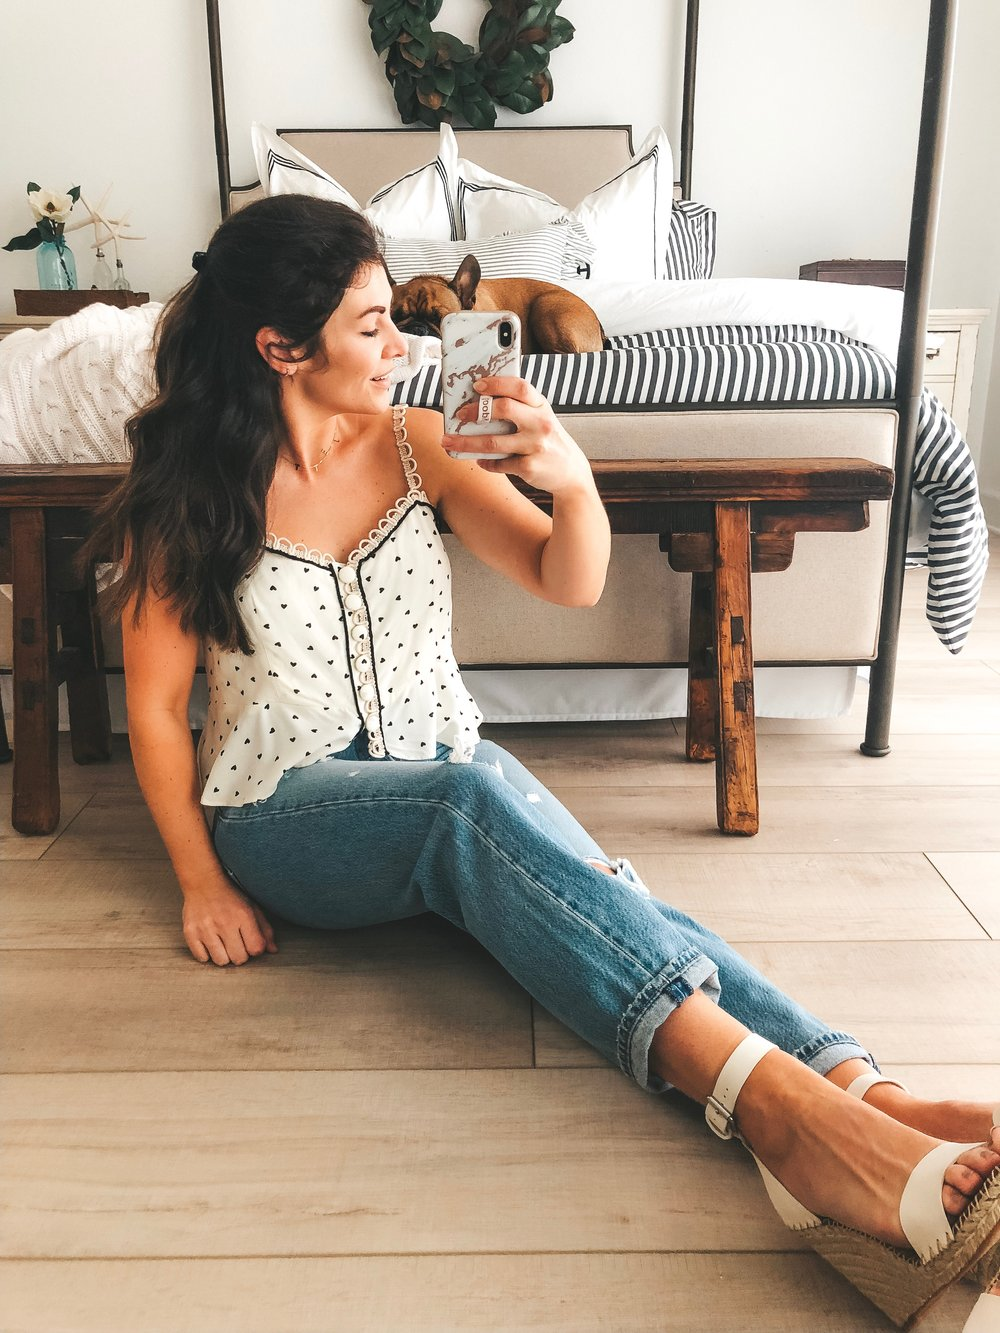 free people true to the heart tank with levi's premium wedgie straight, dolce vita noor sandals.